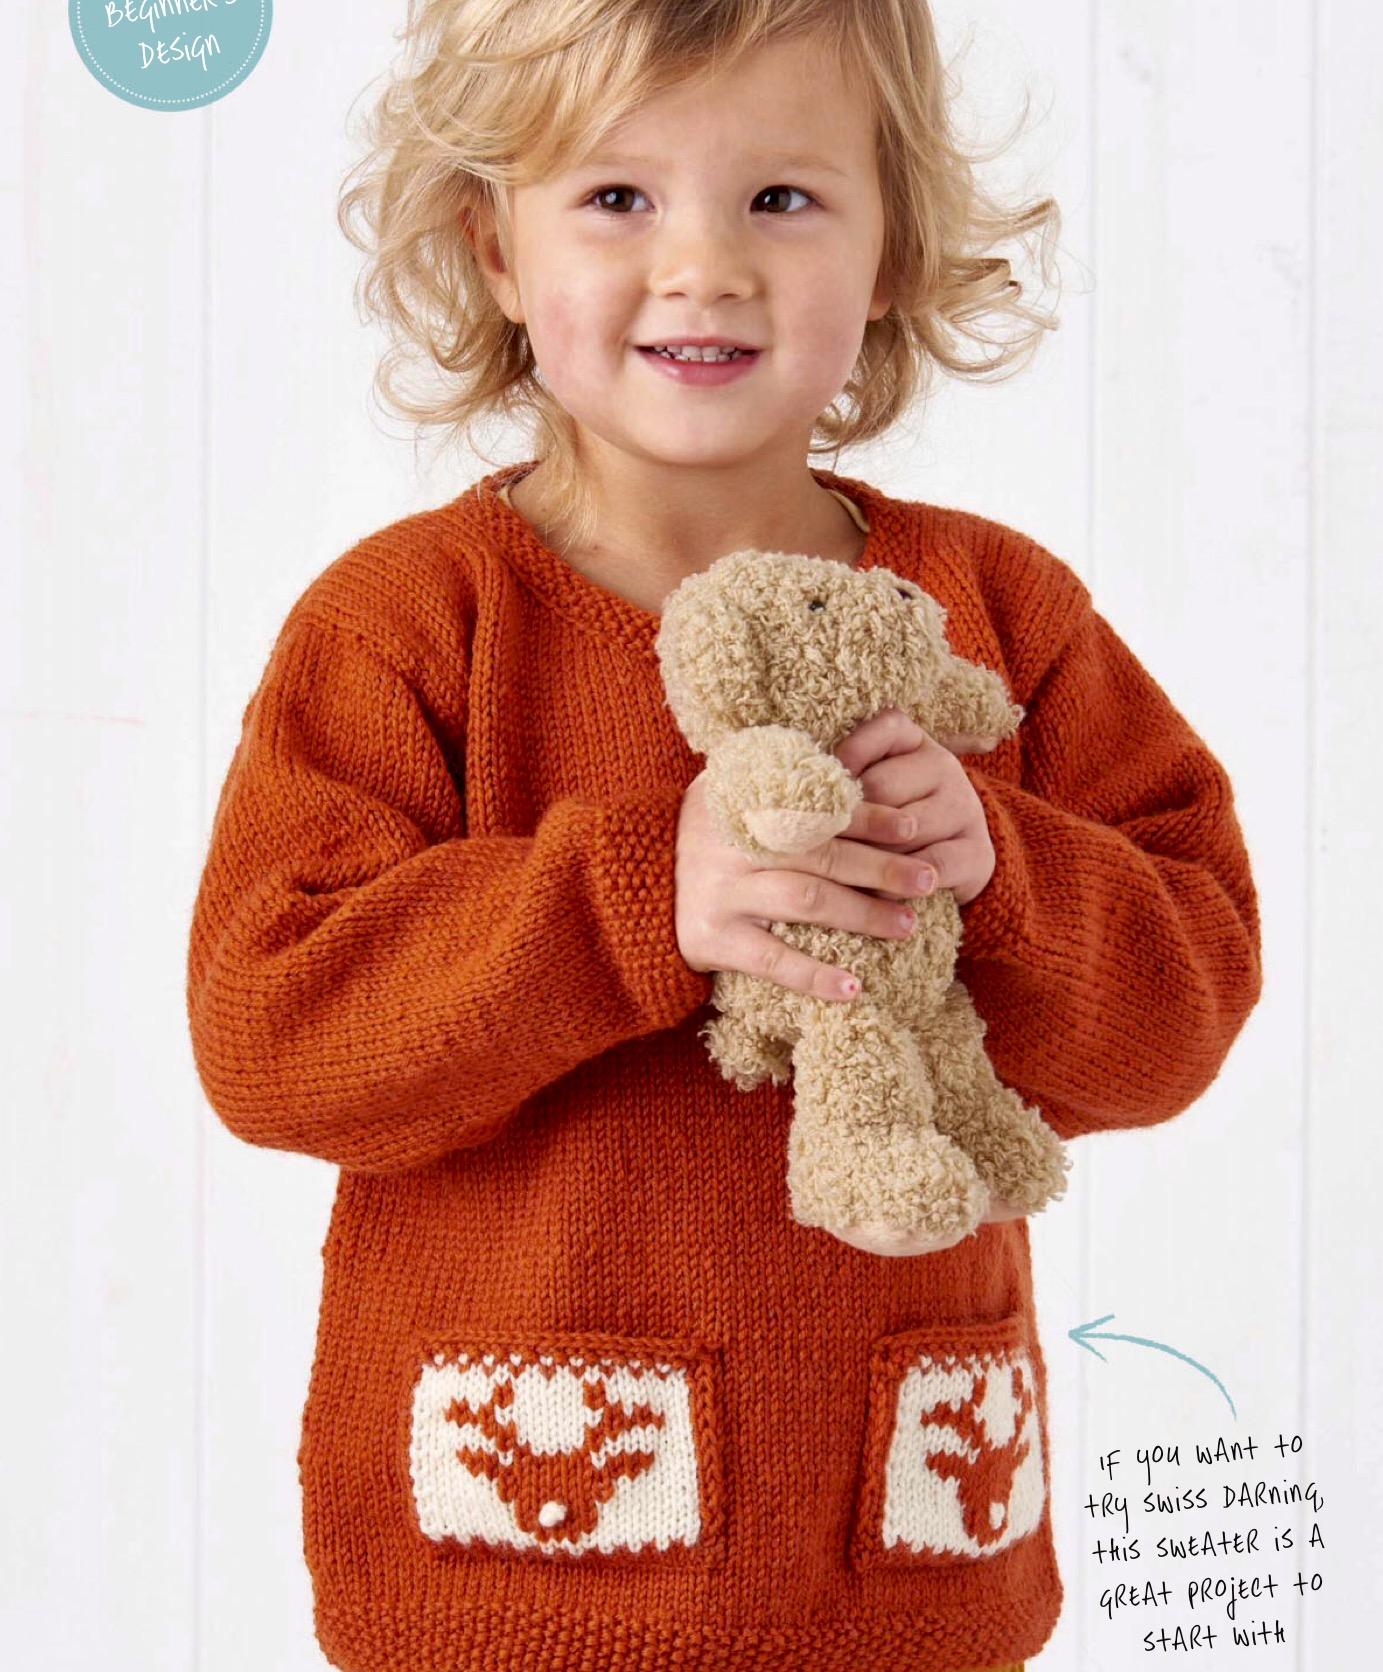 Jane burns reindeer sweater